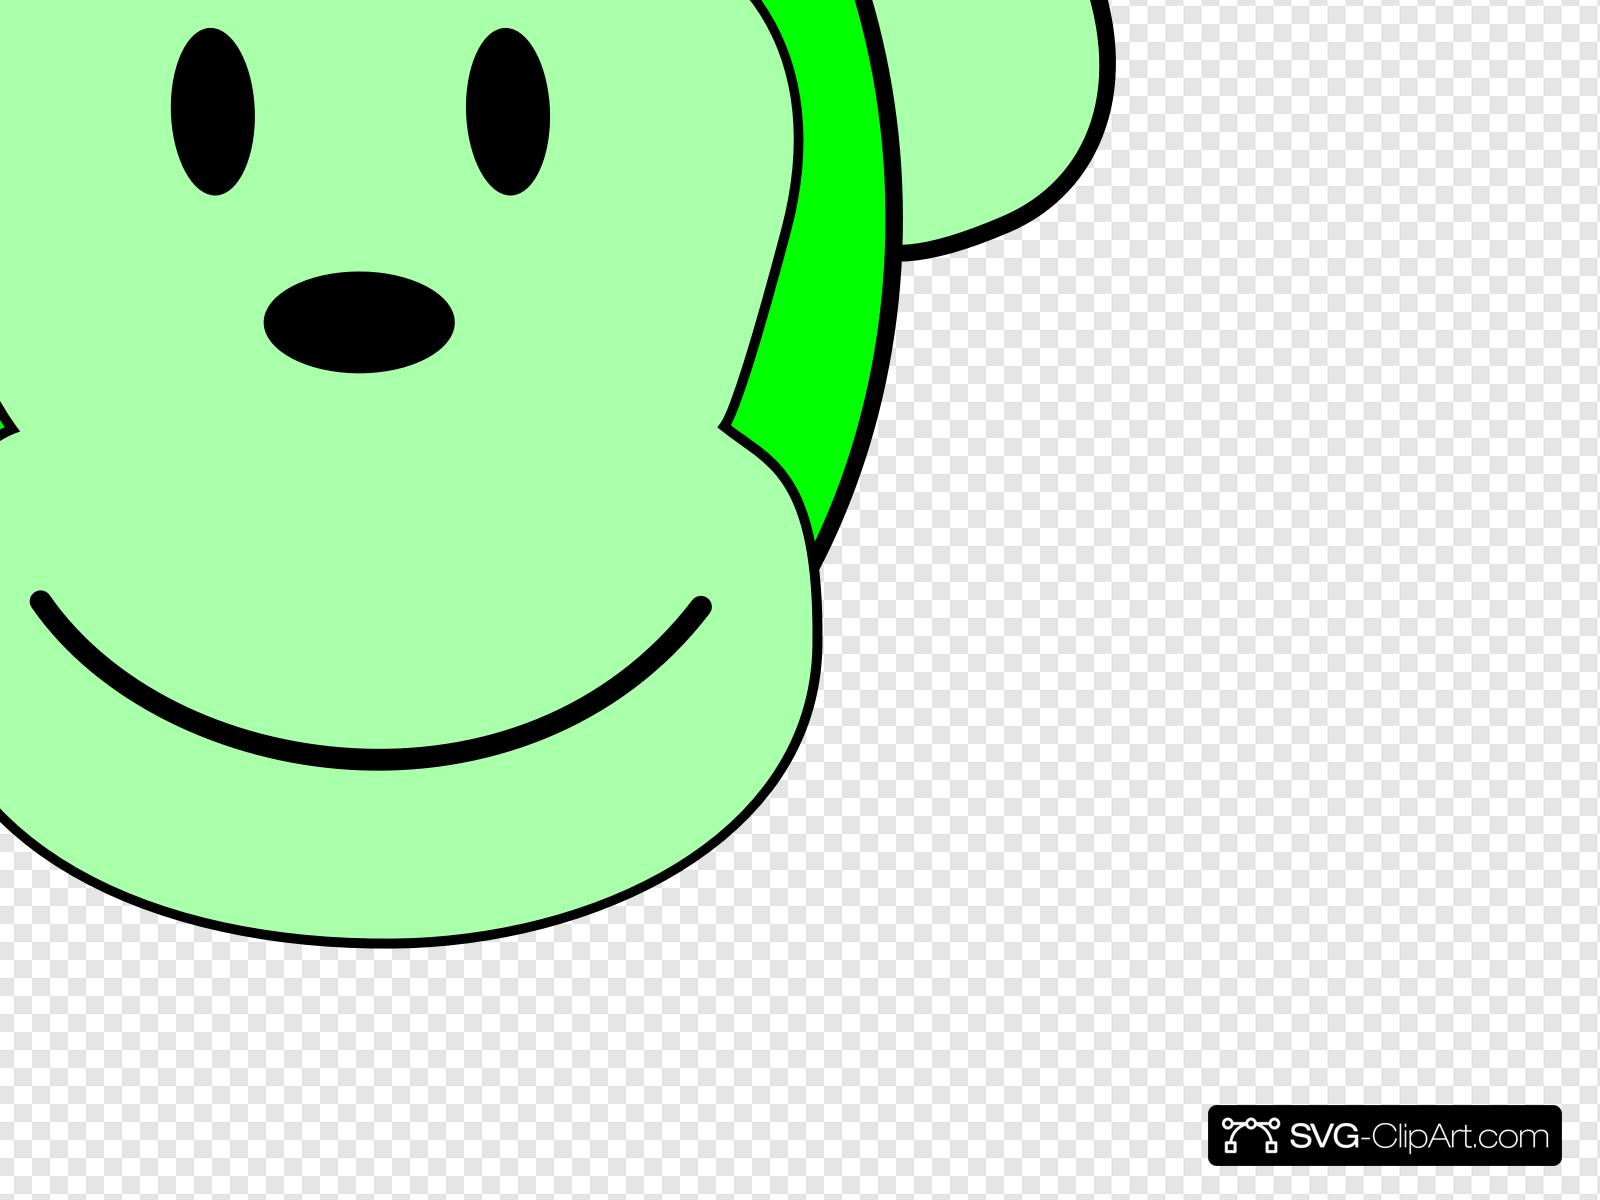 Green Monkey Clip art, Icon and SVG.